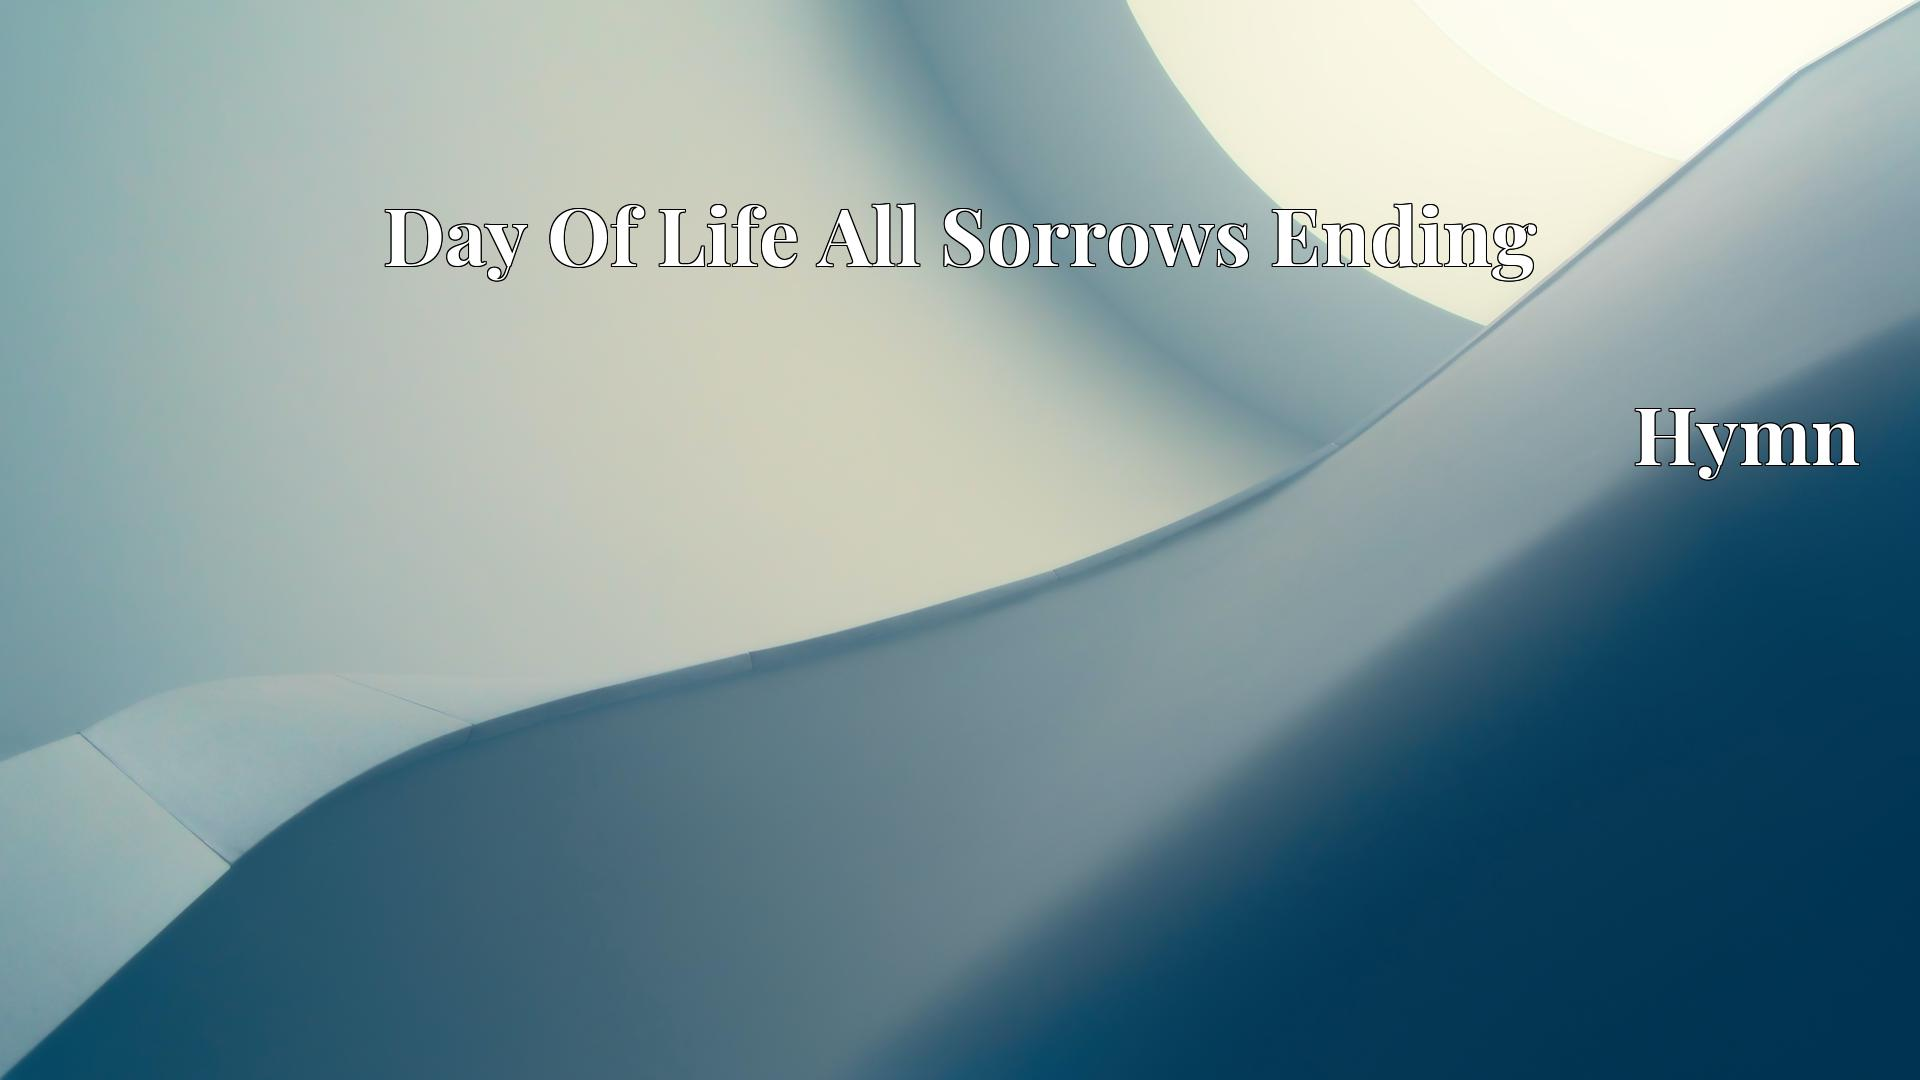 Day Of Life All Sorrows Ending - Hymn